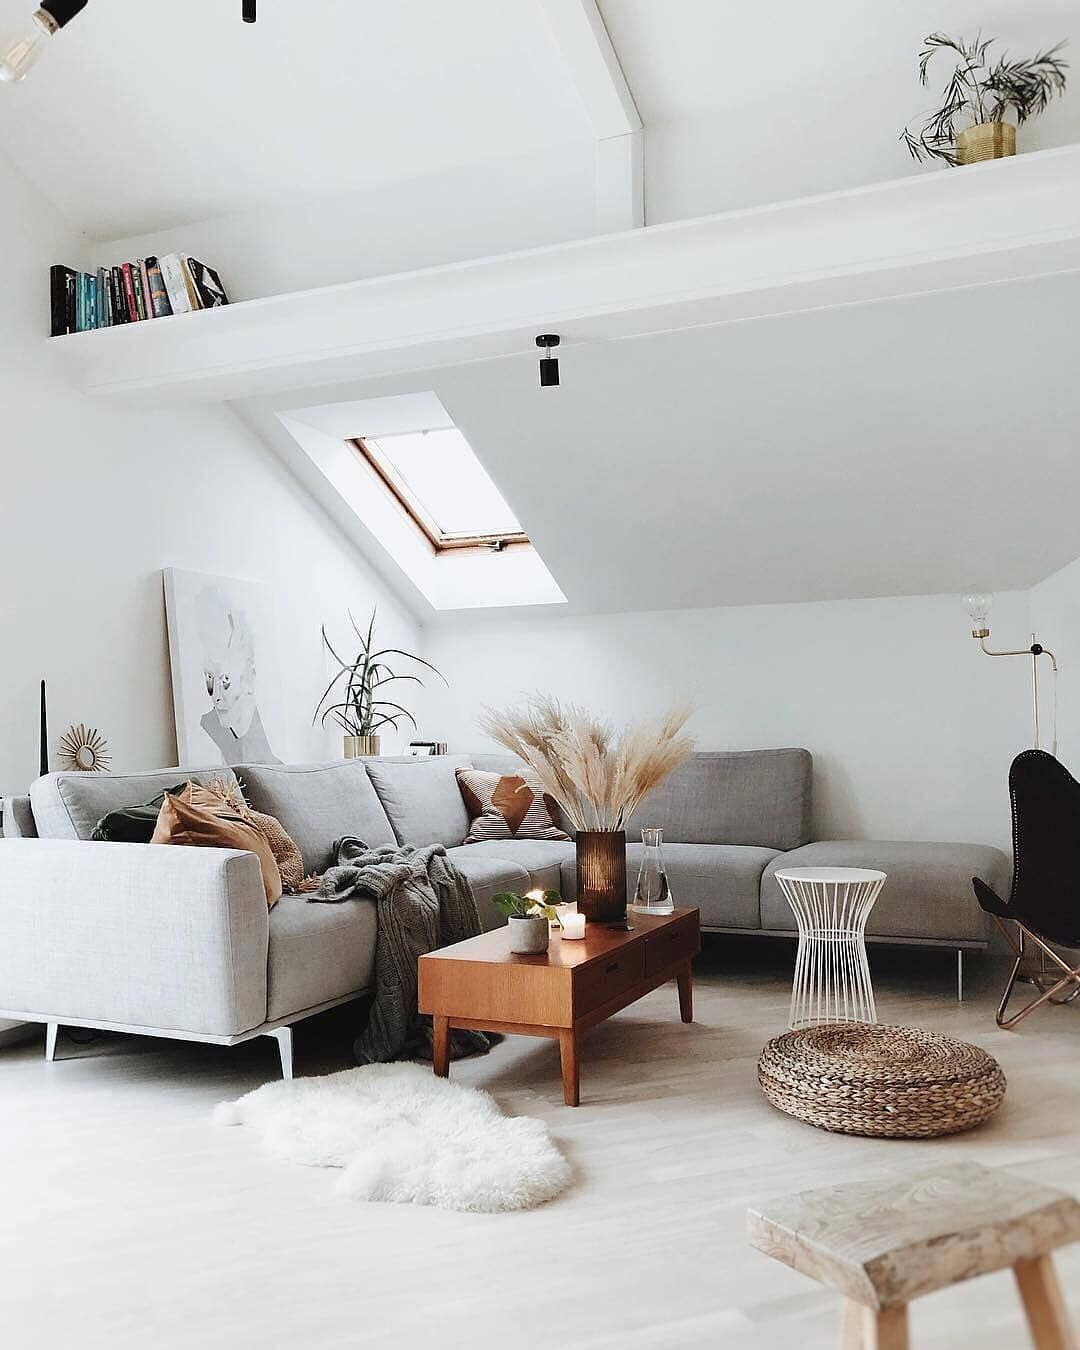 westwingde on Instagram The sloping roof makes this living room so incredibly cozy   gregoryroom   Westwing Home  Living Germany on Instagram The sloping roof makes this...